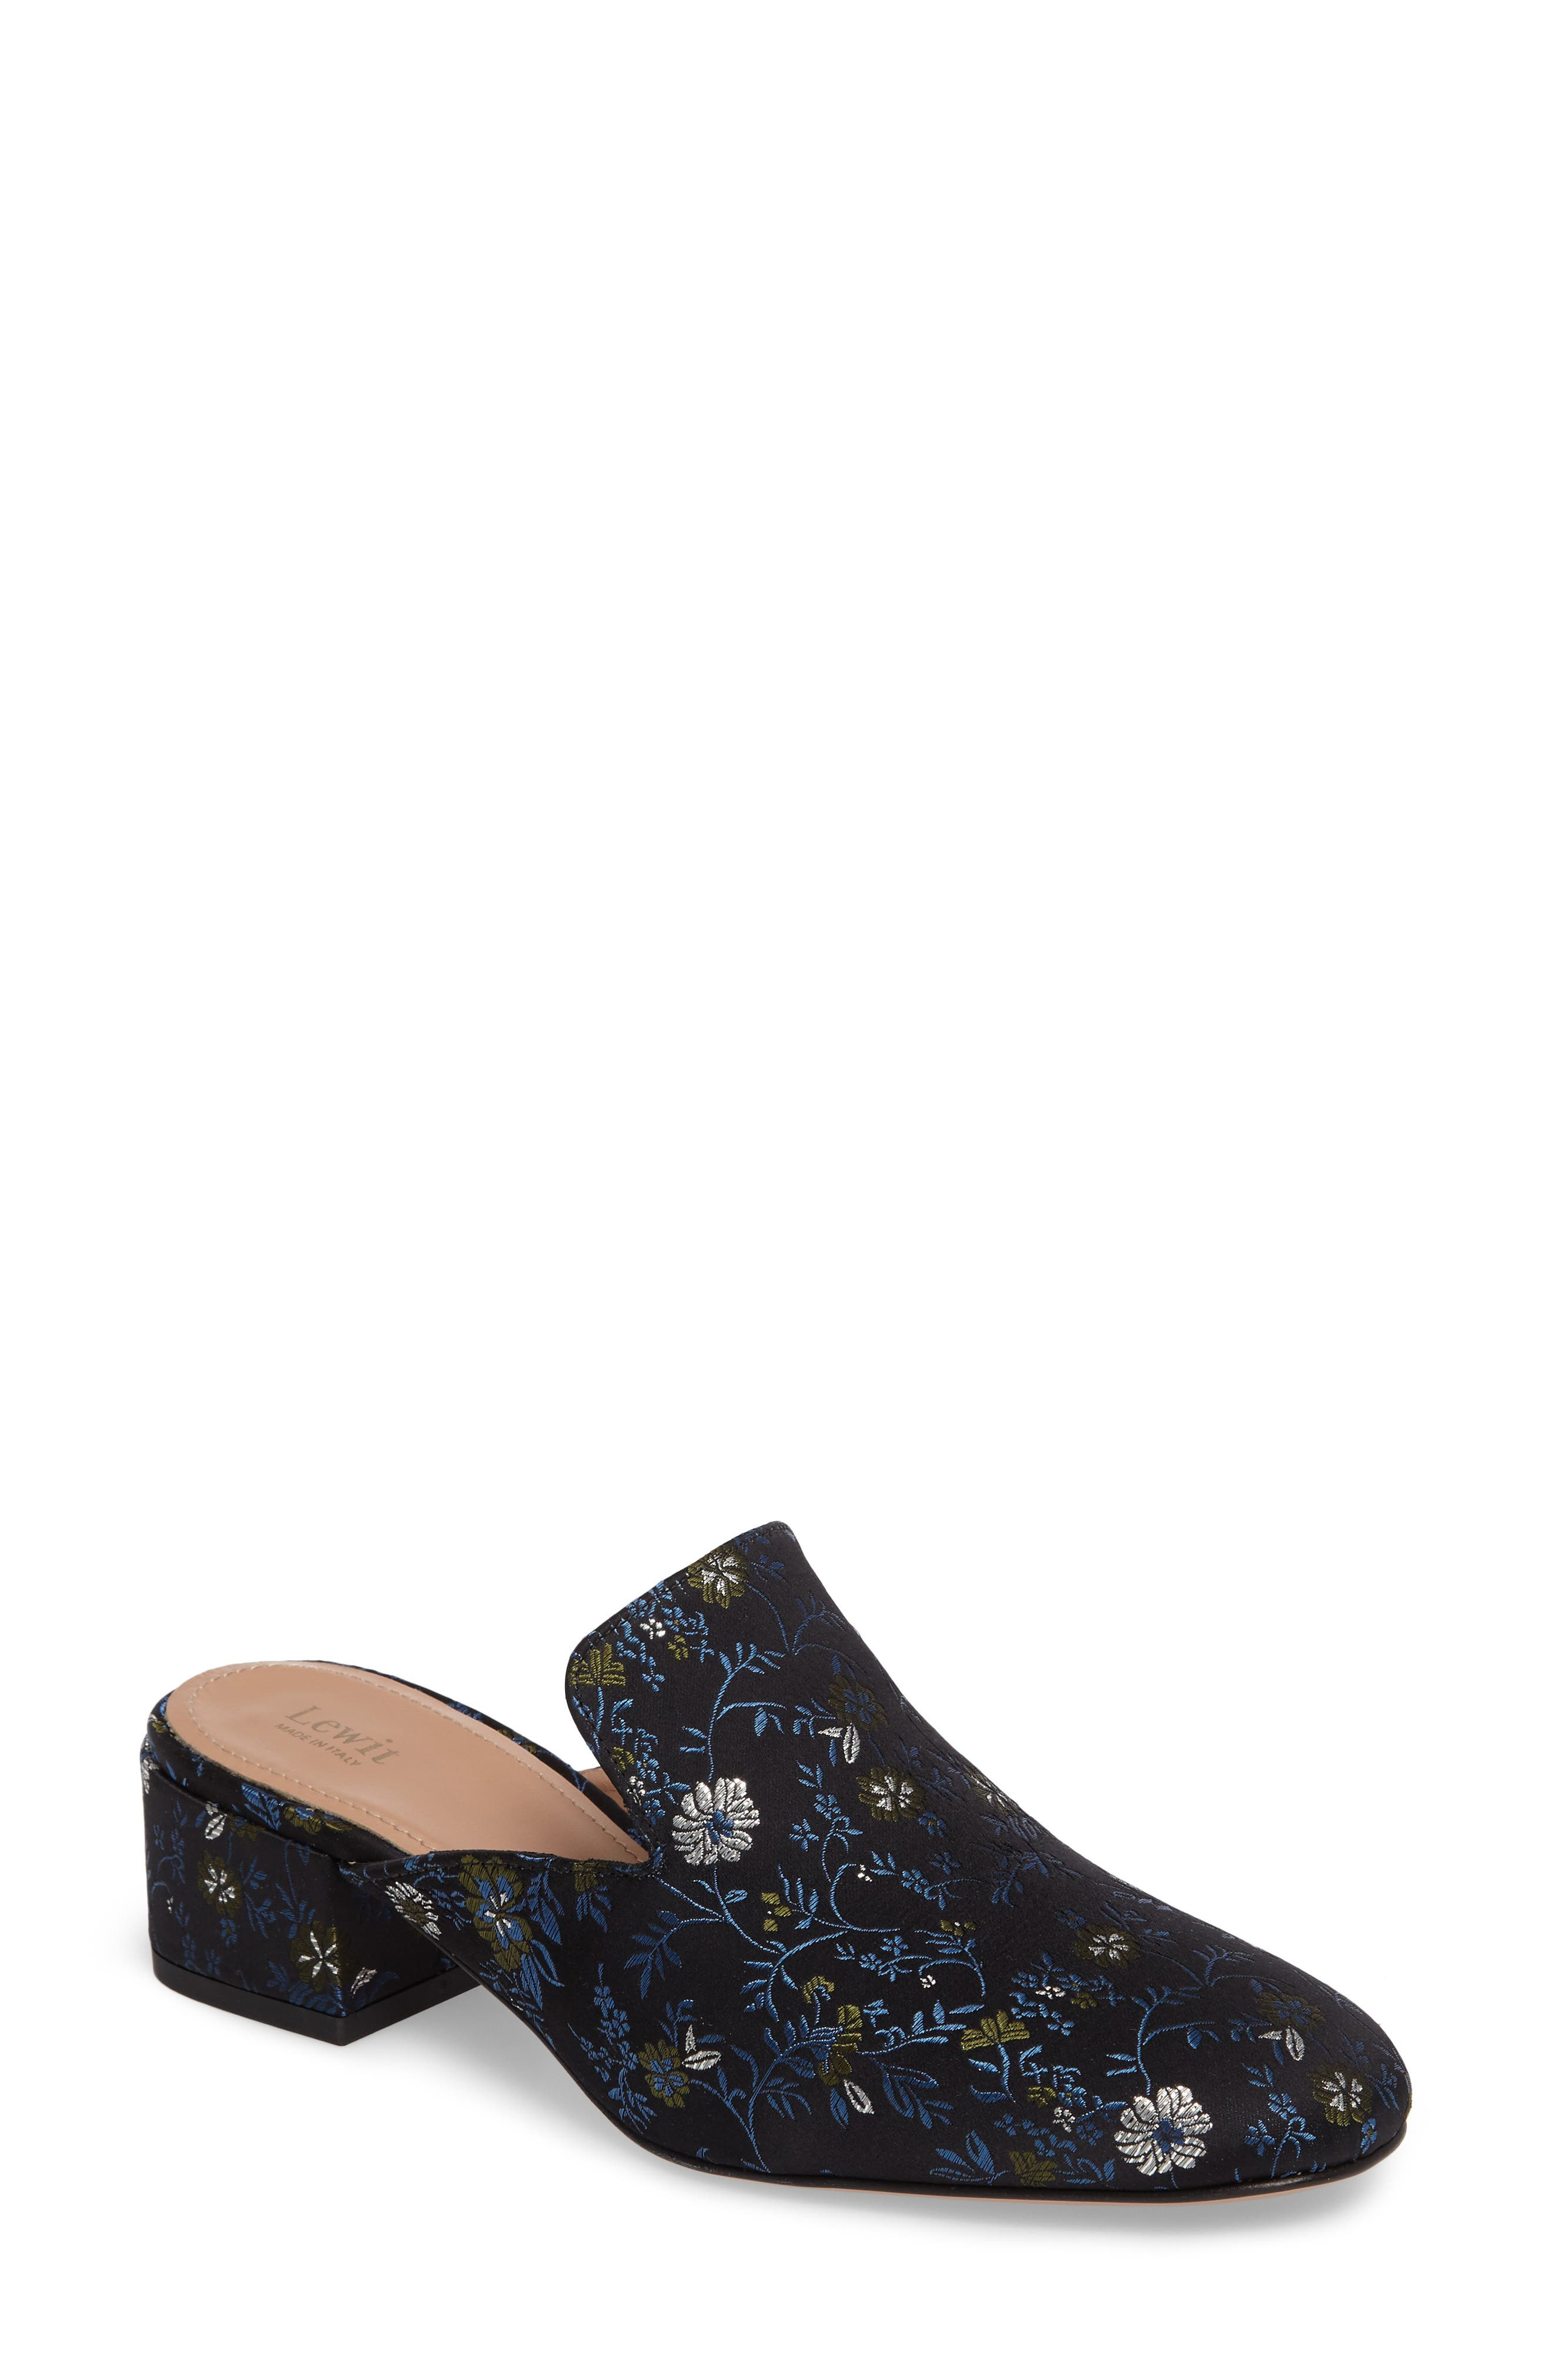 Bianca Embroidered Loafer Mule,                             Main thumbnail 1, color,                             005